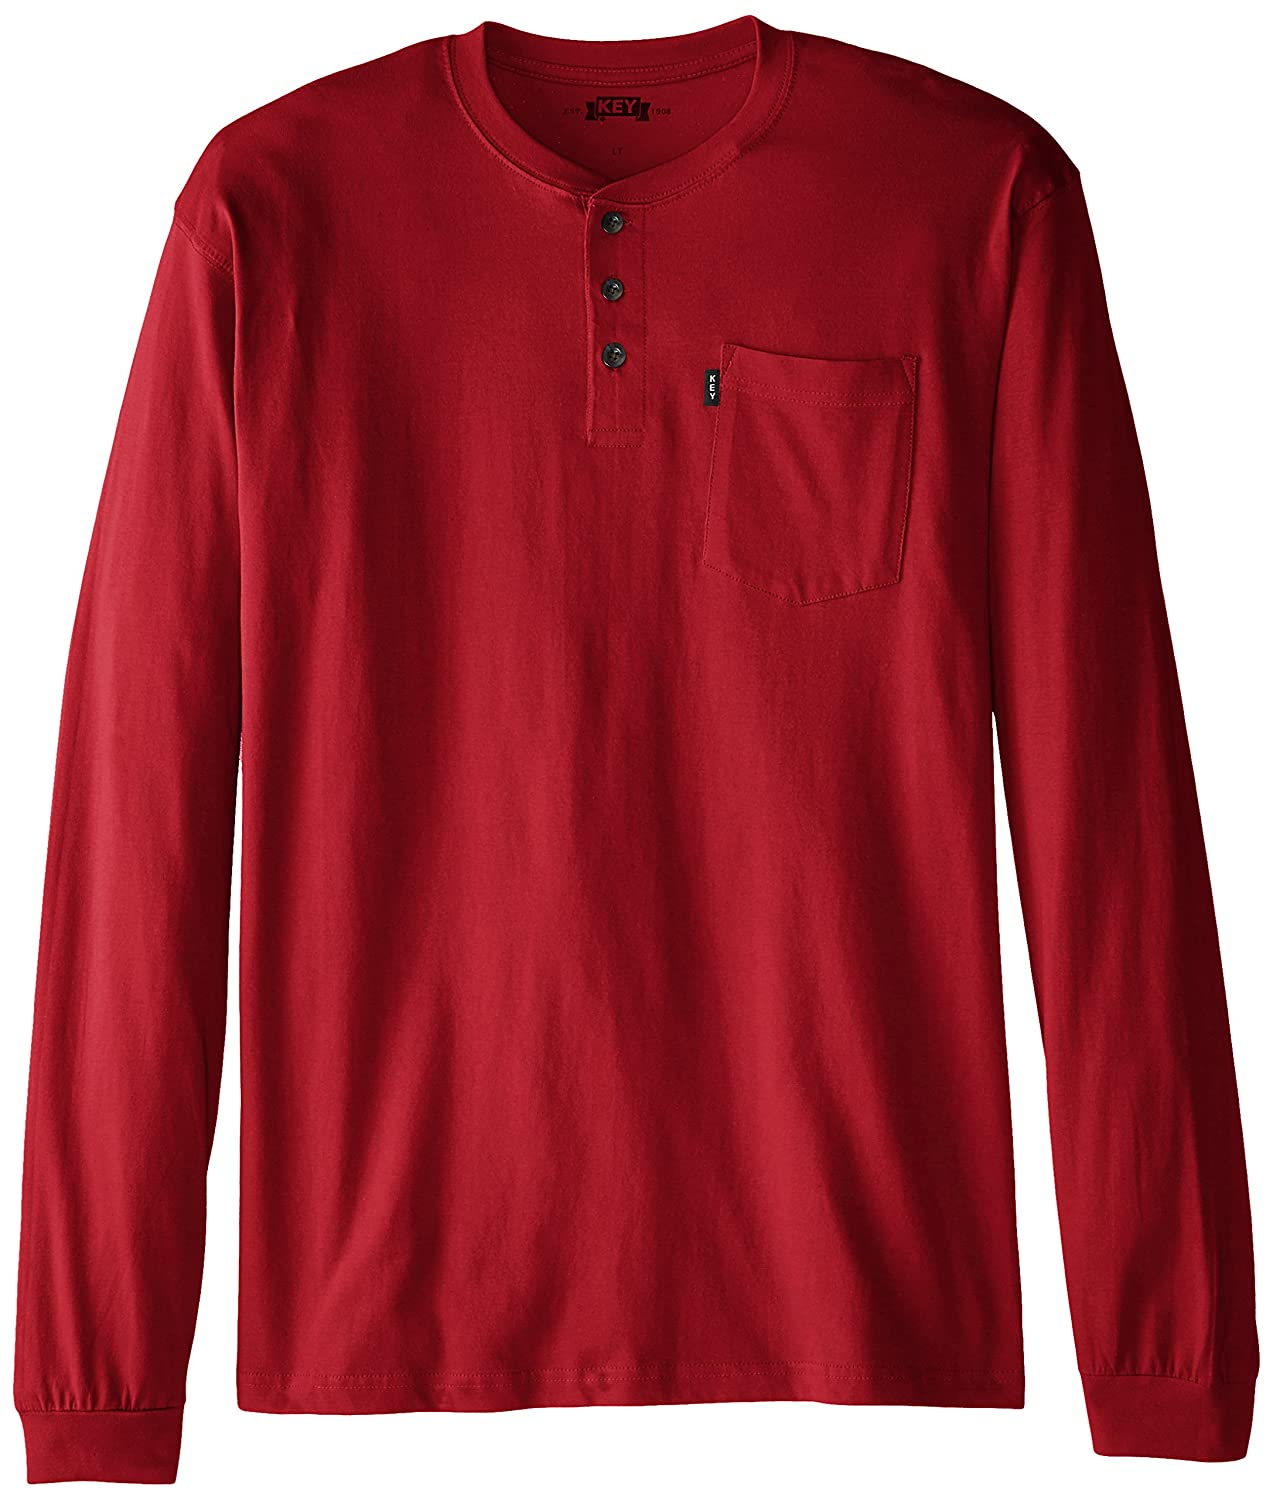 Key Apparel Men's Big & Tall 3-Button Long-Sleeve Henley Pocket T- Shirt 865B